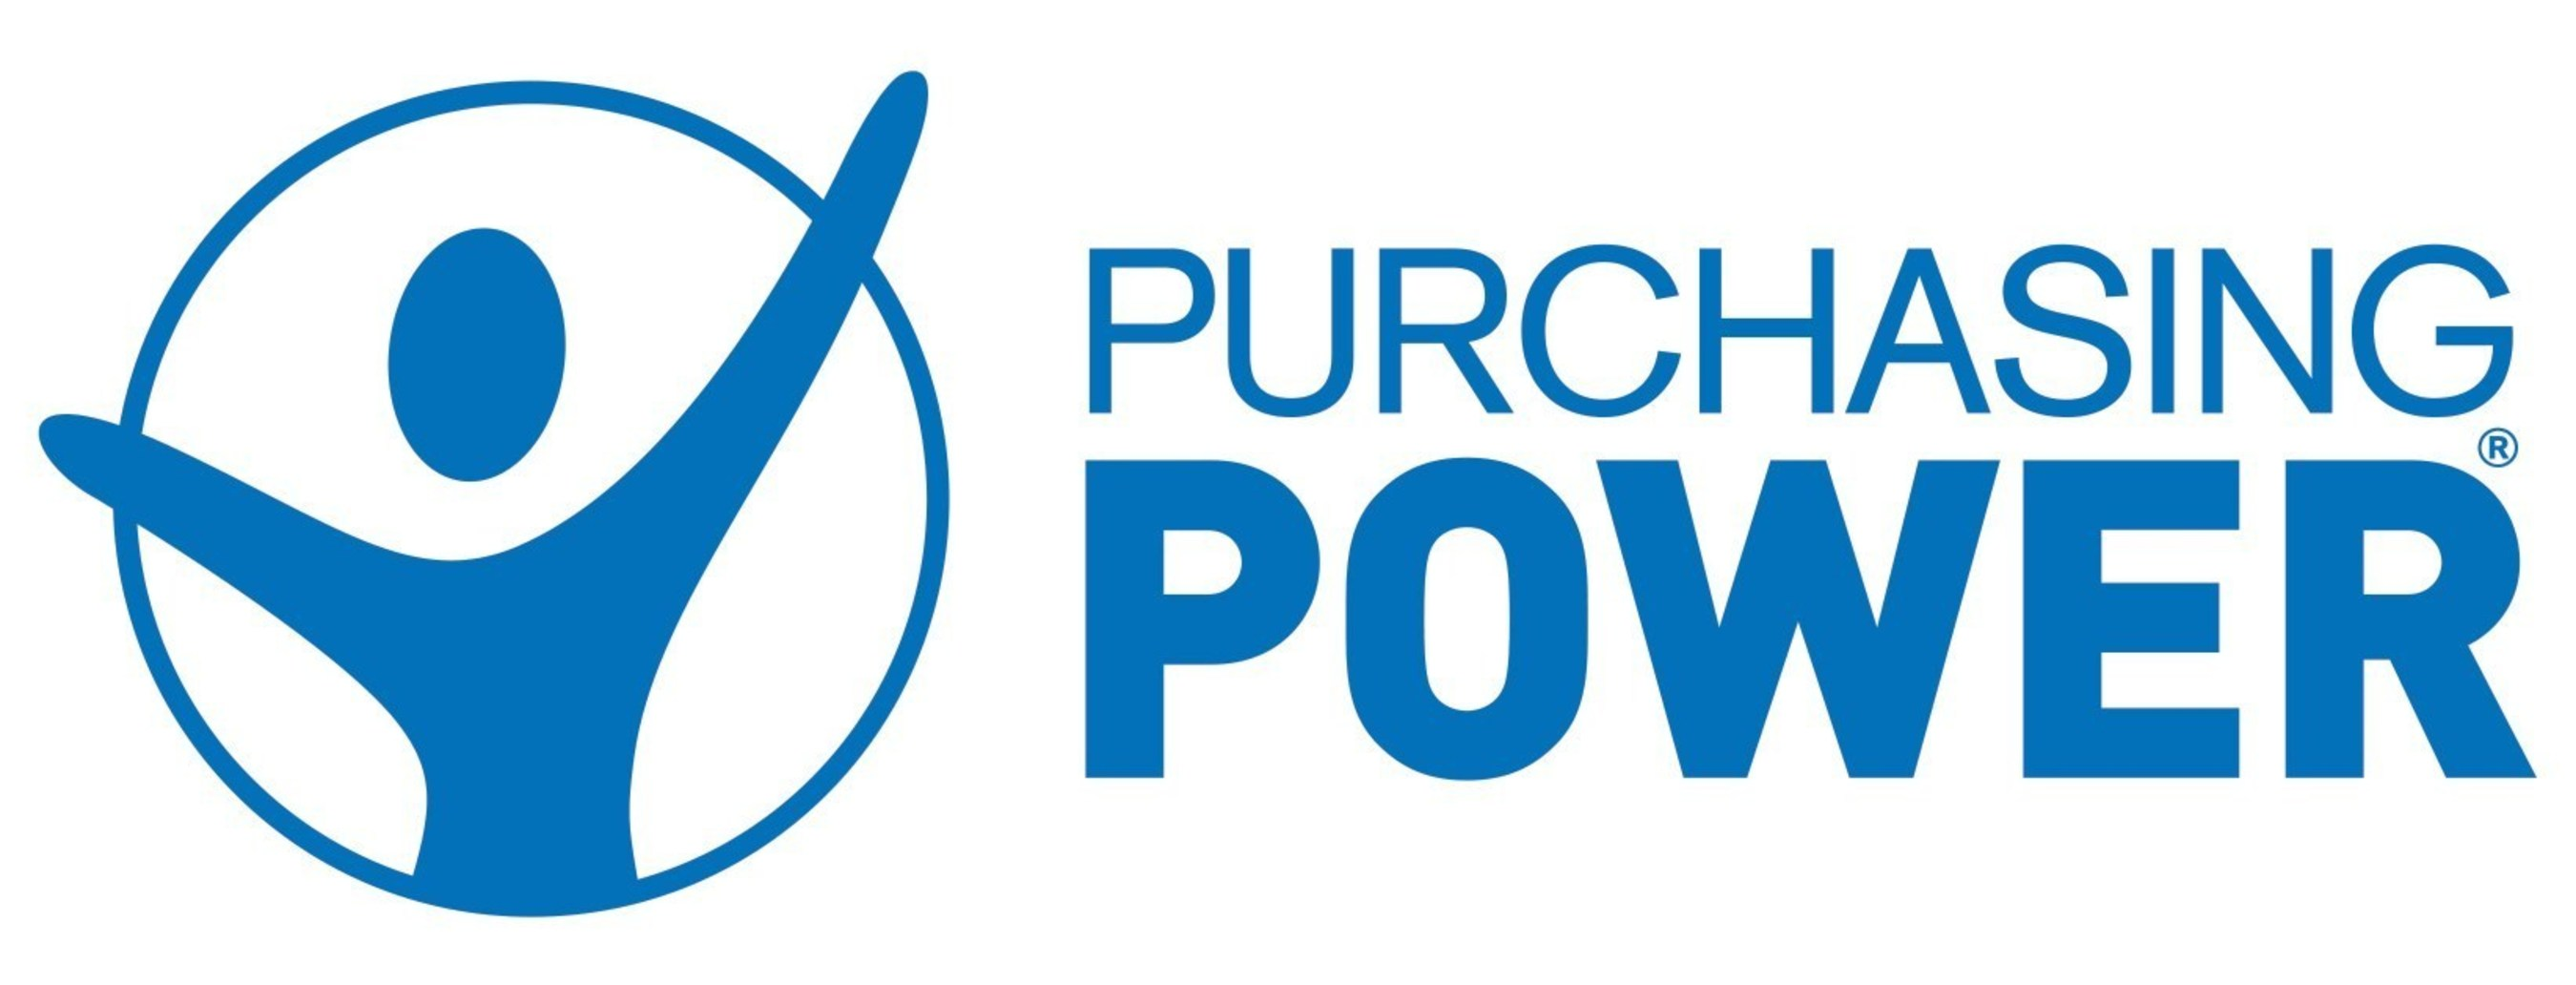 Purchasing Power - Director